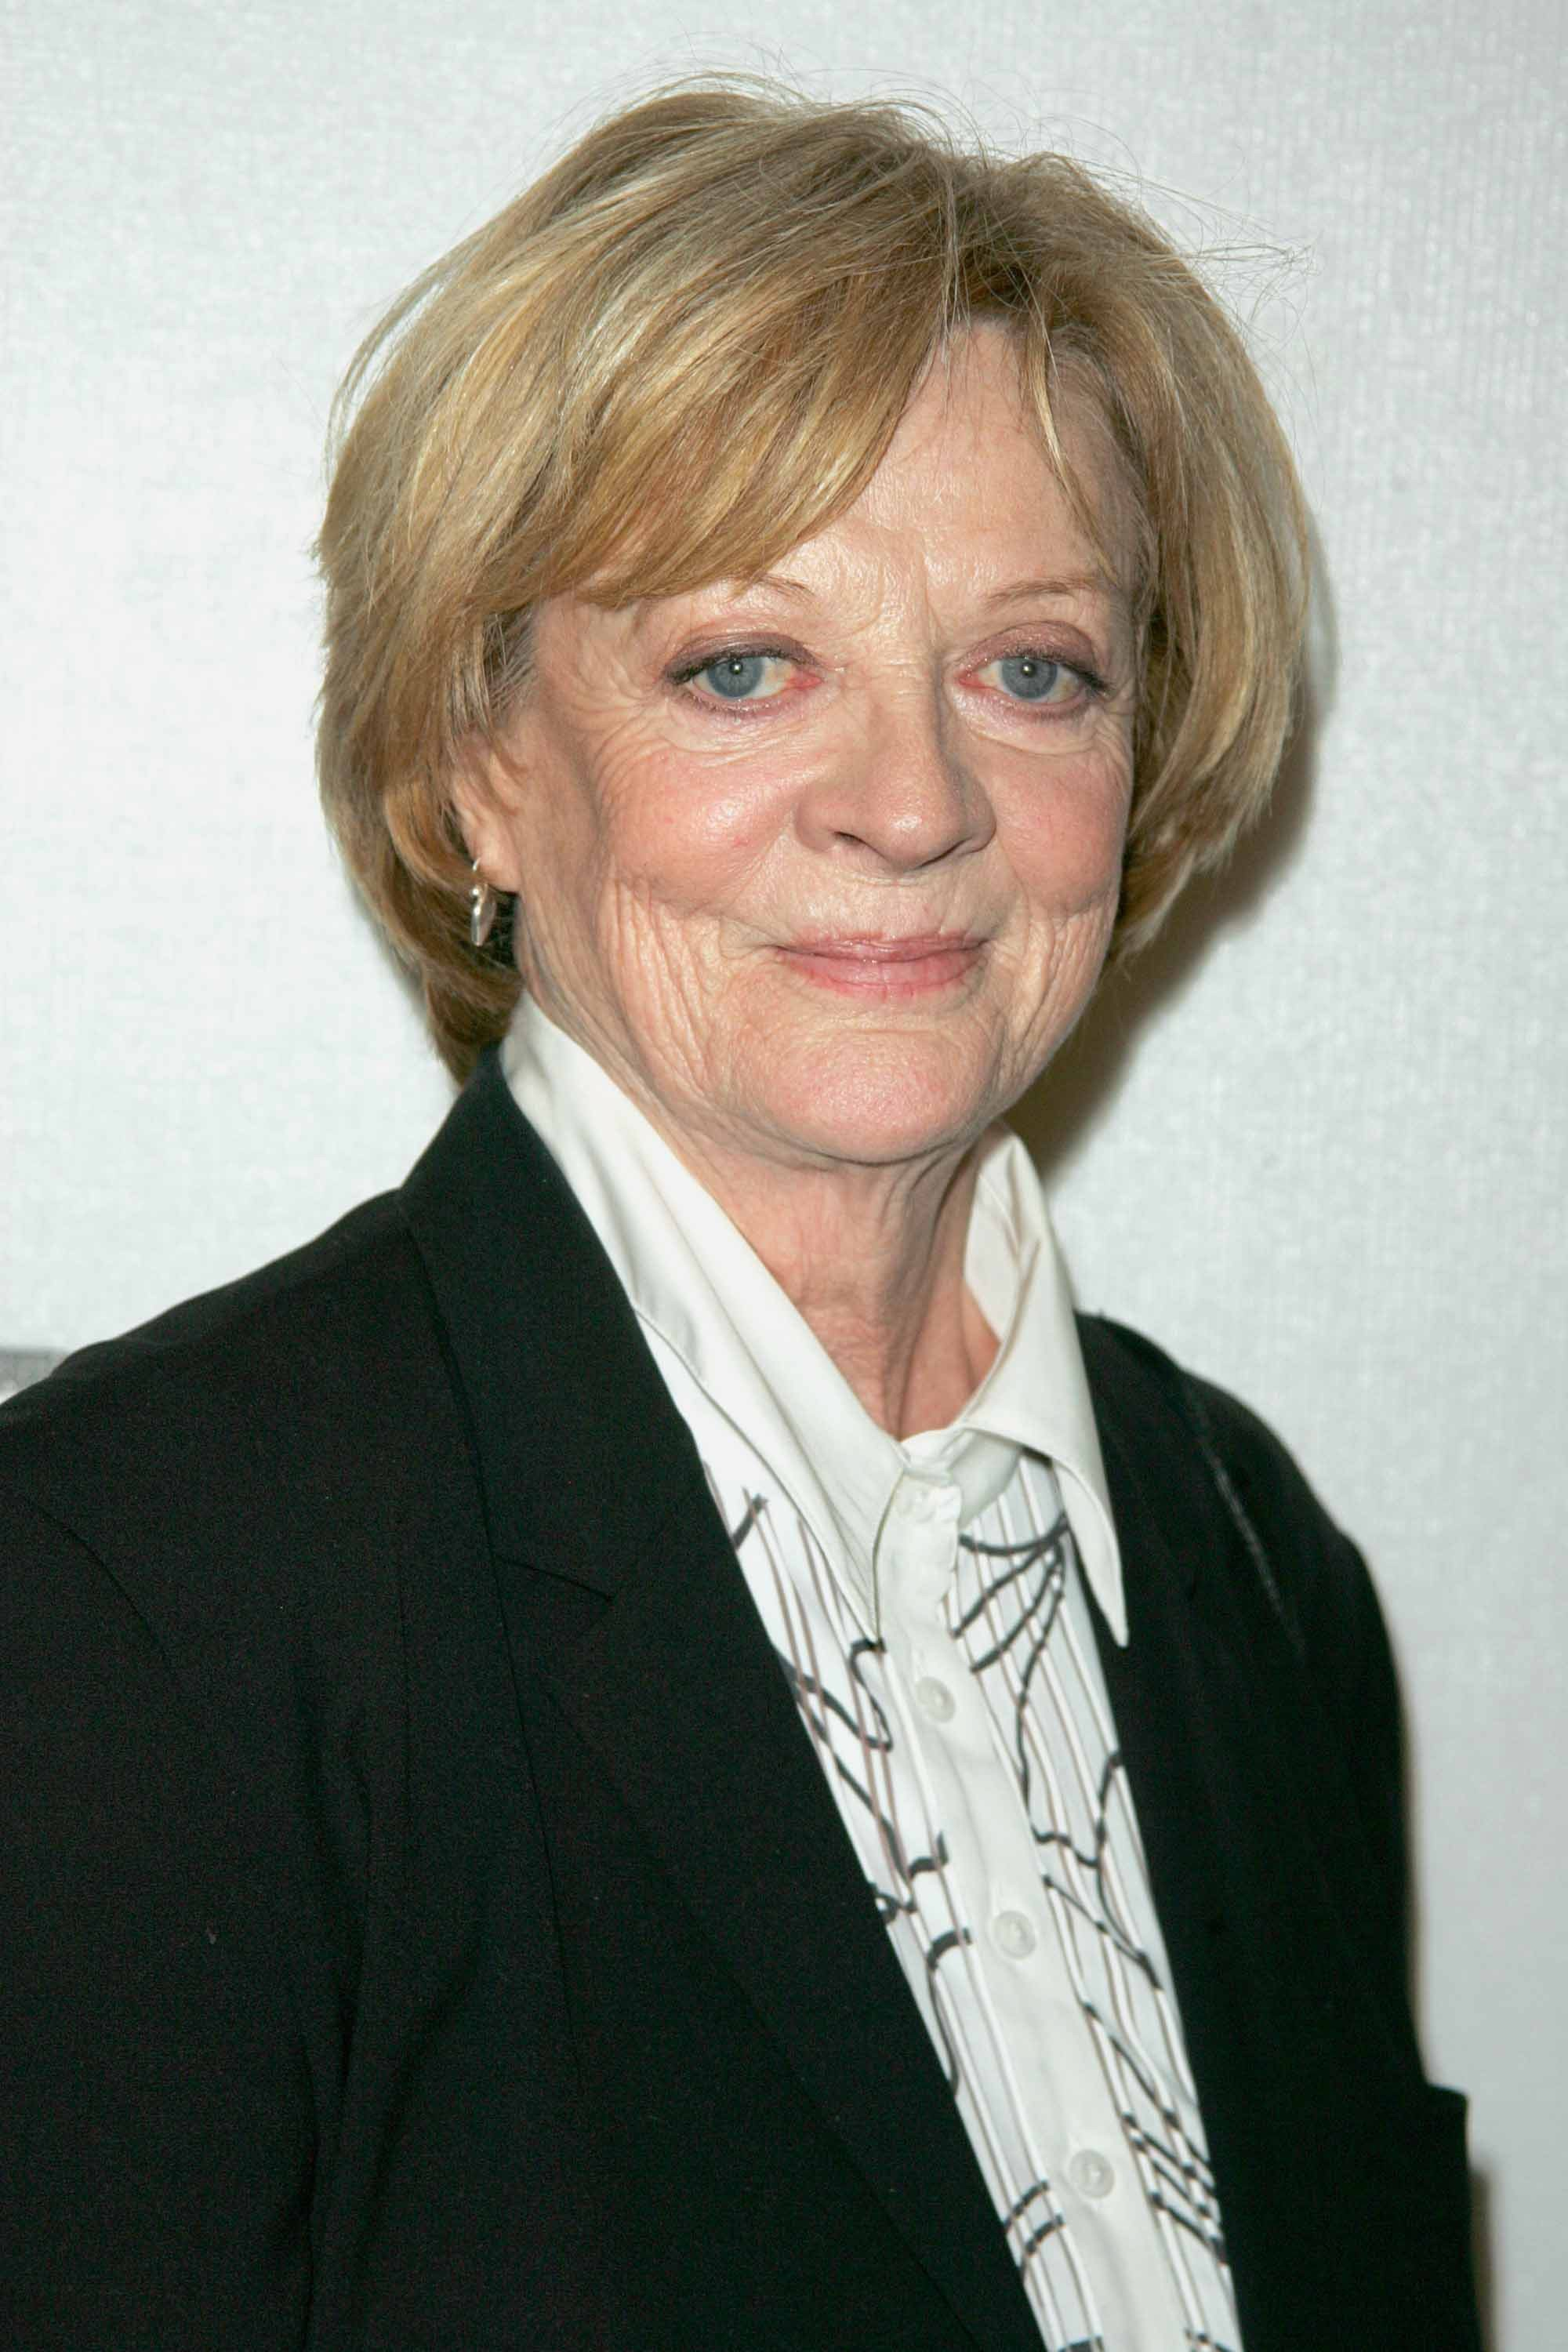 maggie smith - harry potter wiki